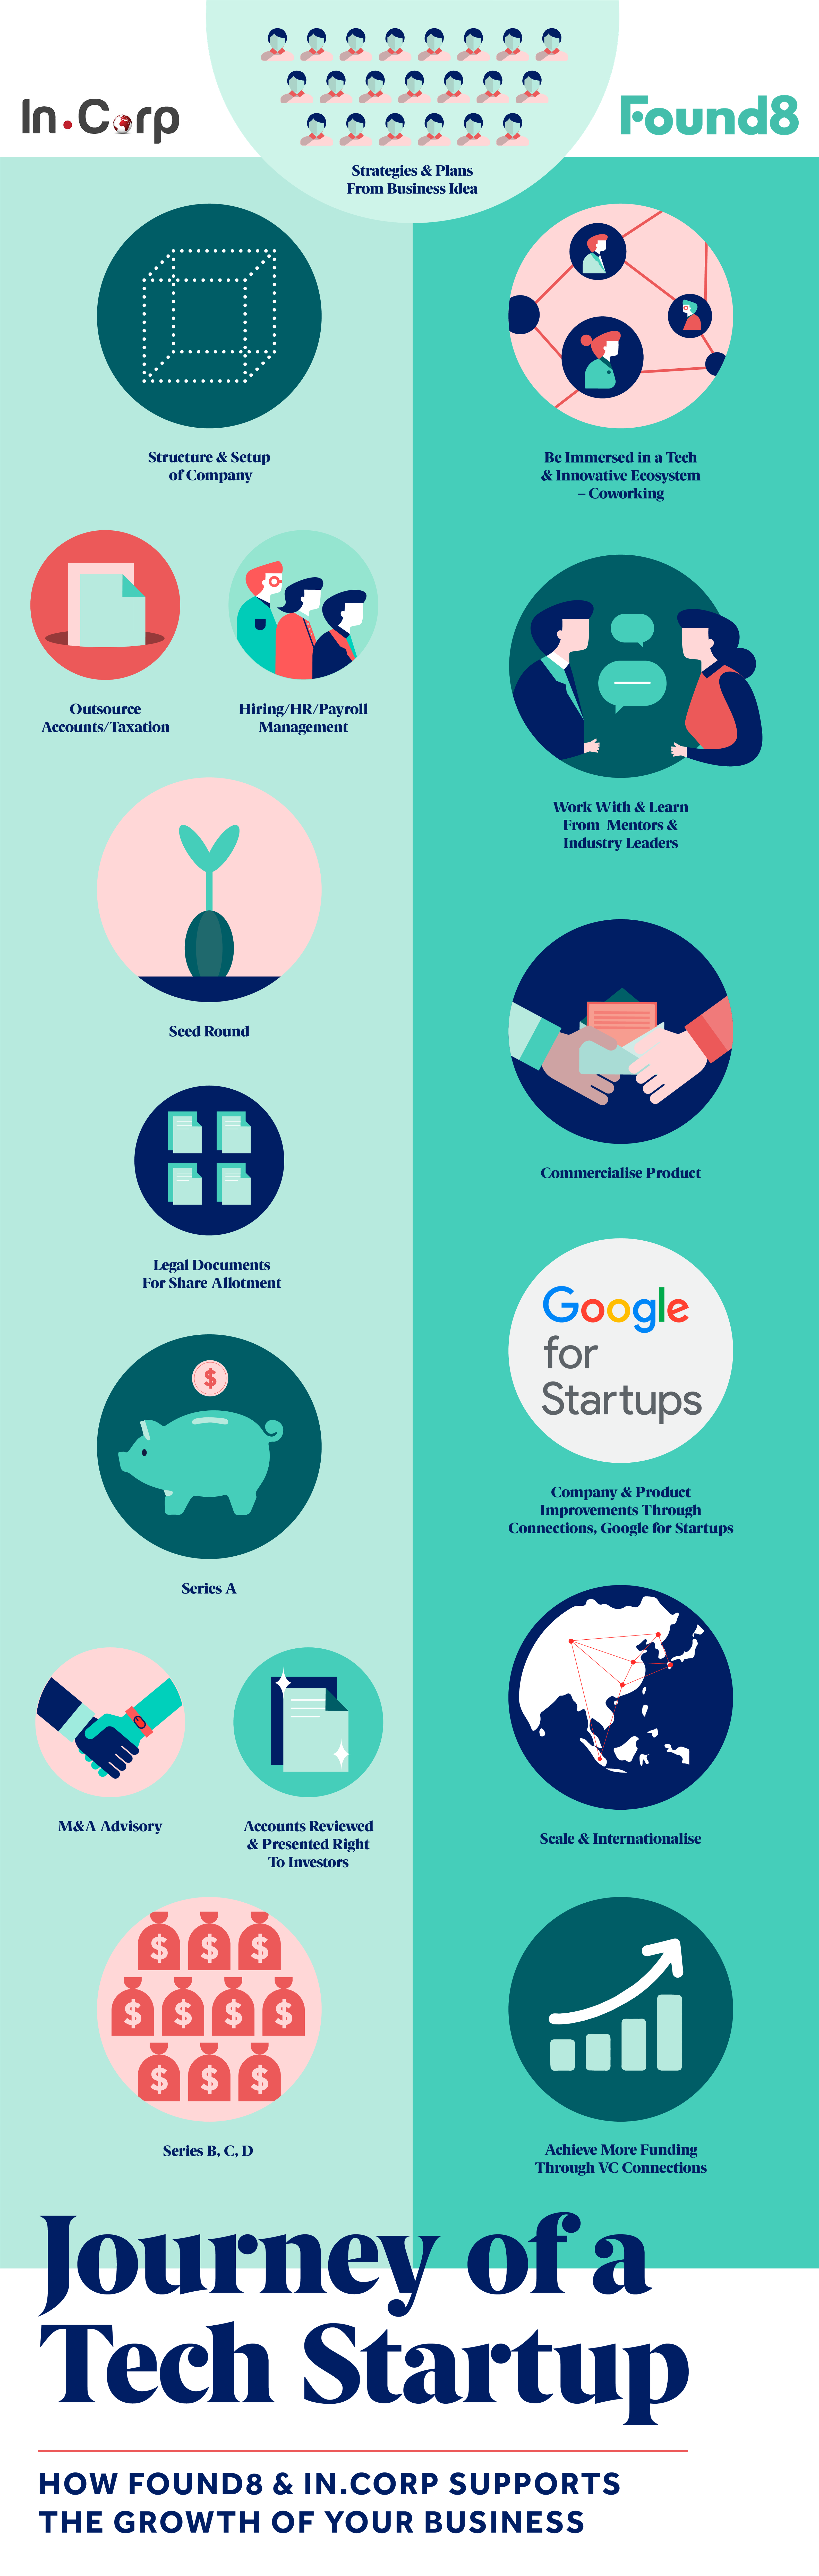 Social_InCorp_F8_Infographic-01